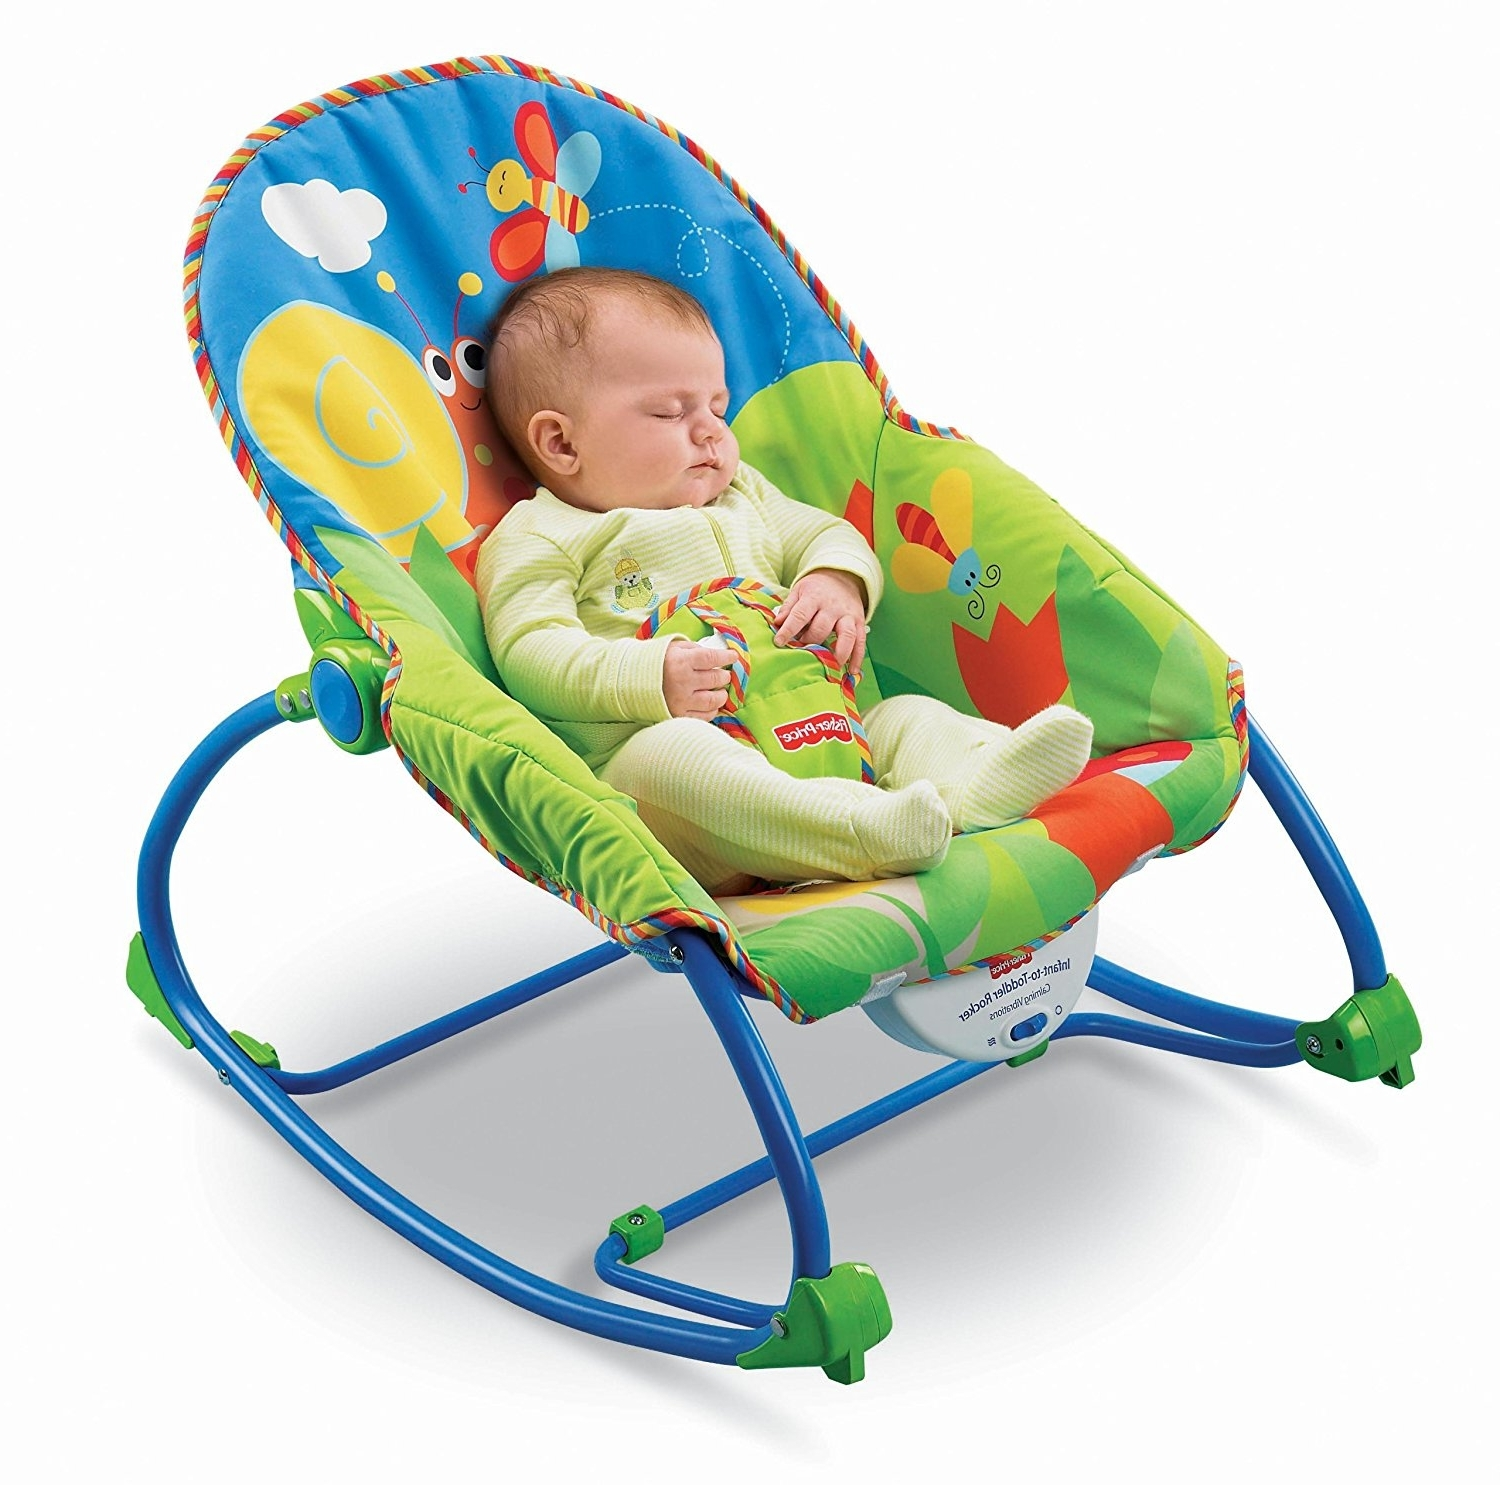 Comfy Baby Rocker Chairs Uk J13S On Nice Decorating Home Ideas With Pertaining To Current Rocking Chairs For Babies (View 9 of 15)